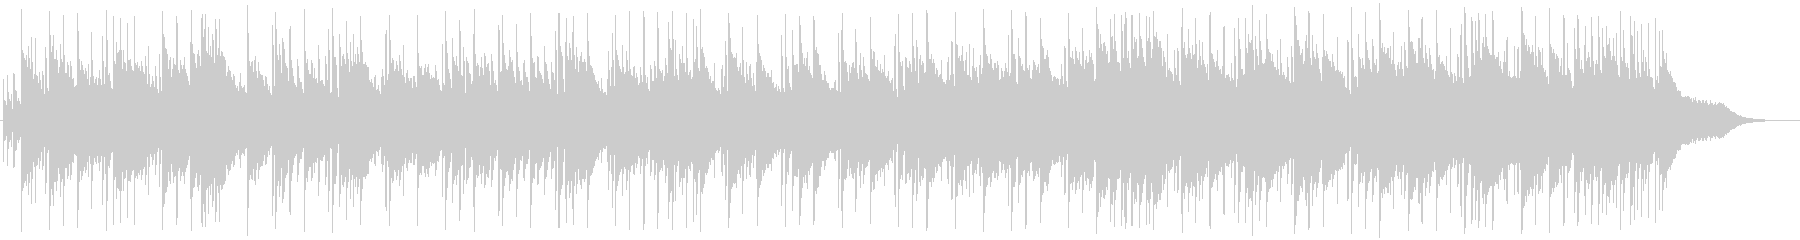 Clean and bright wedding style BGM's unreproduced waveform